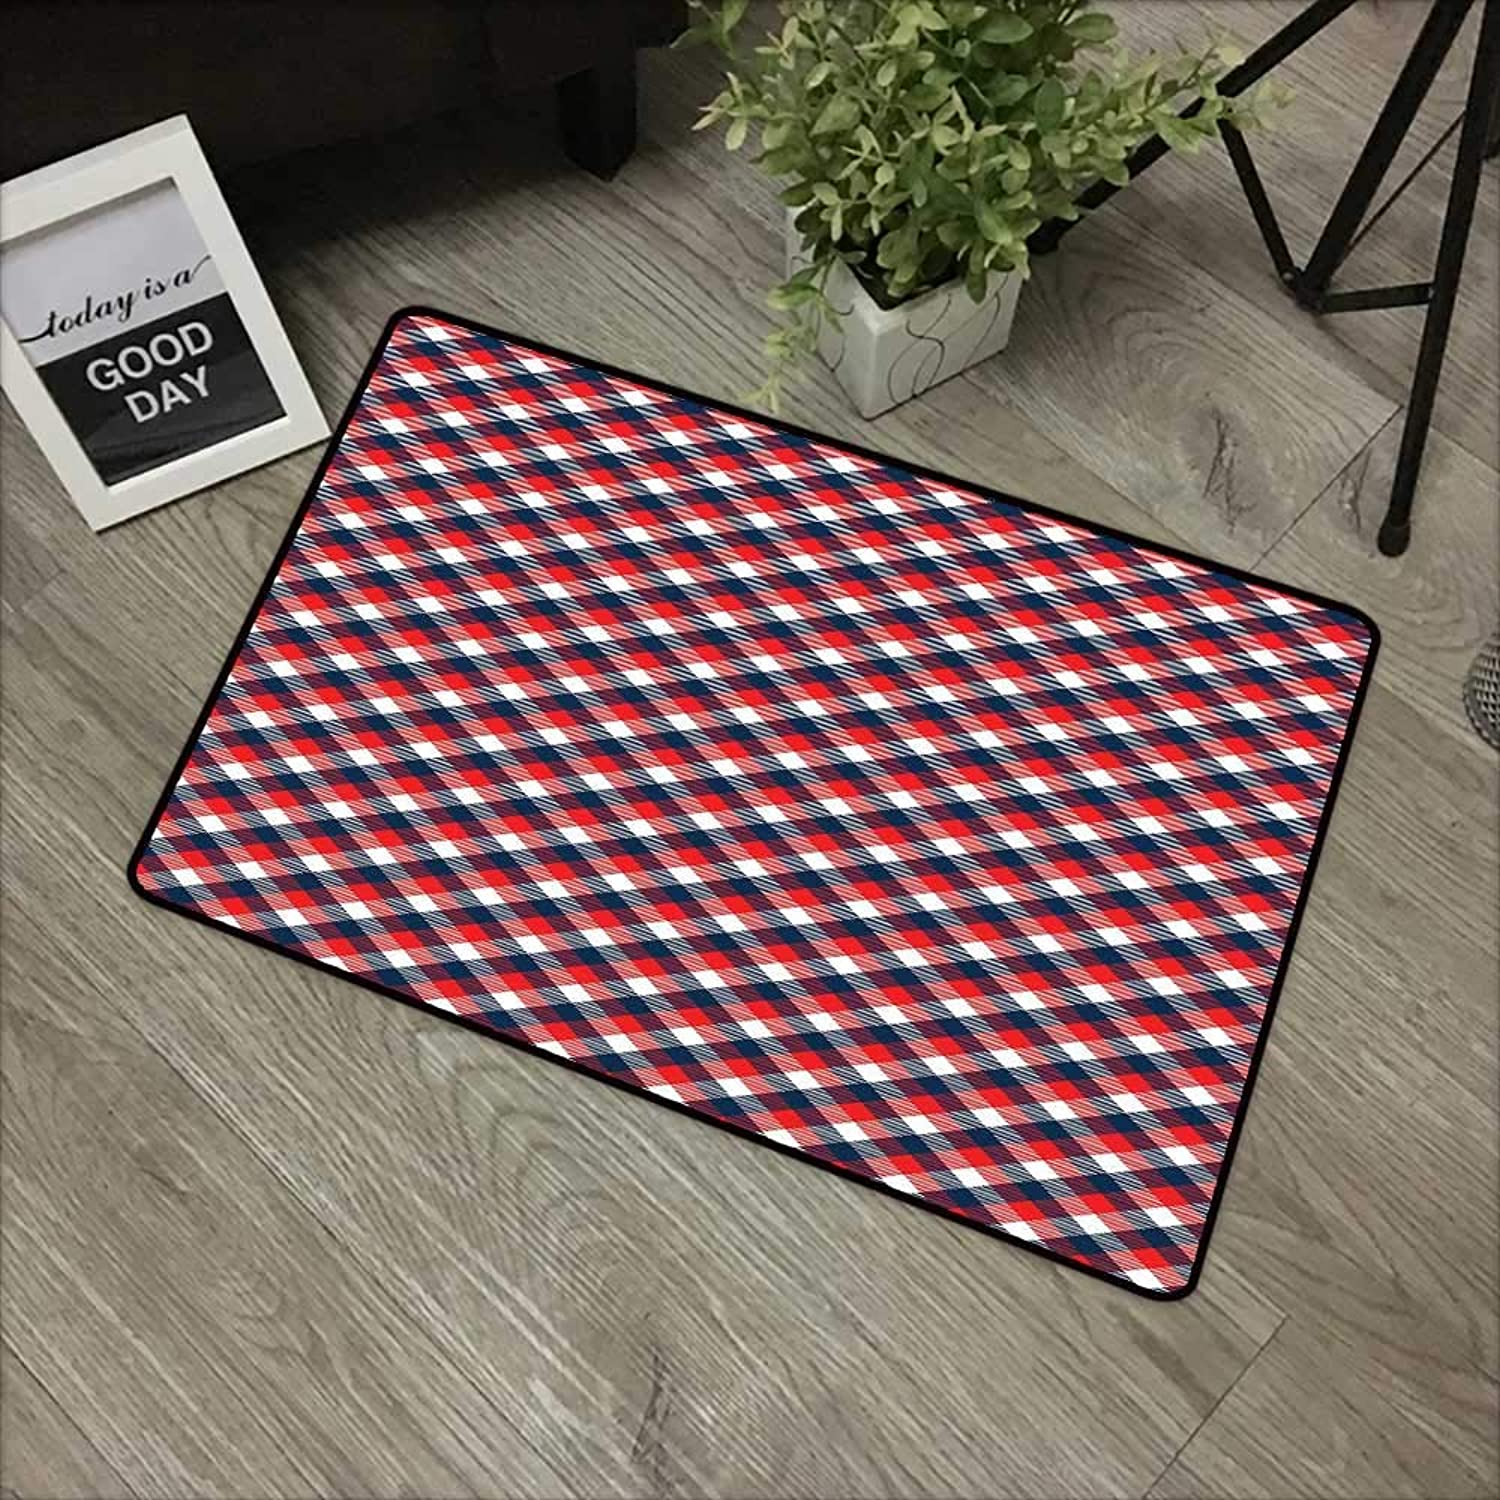 Living Room Door mat W35 x L59 INCH Plaid,Checkered Gingham with Old Fashioned English Country Striped Squares,Navy bluee Vermilion White with Non-Slip Backing Door Mat Carpet